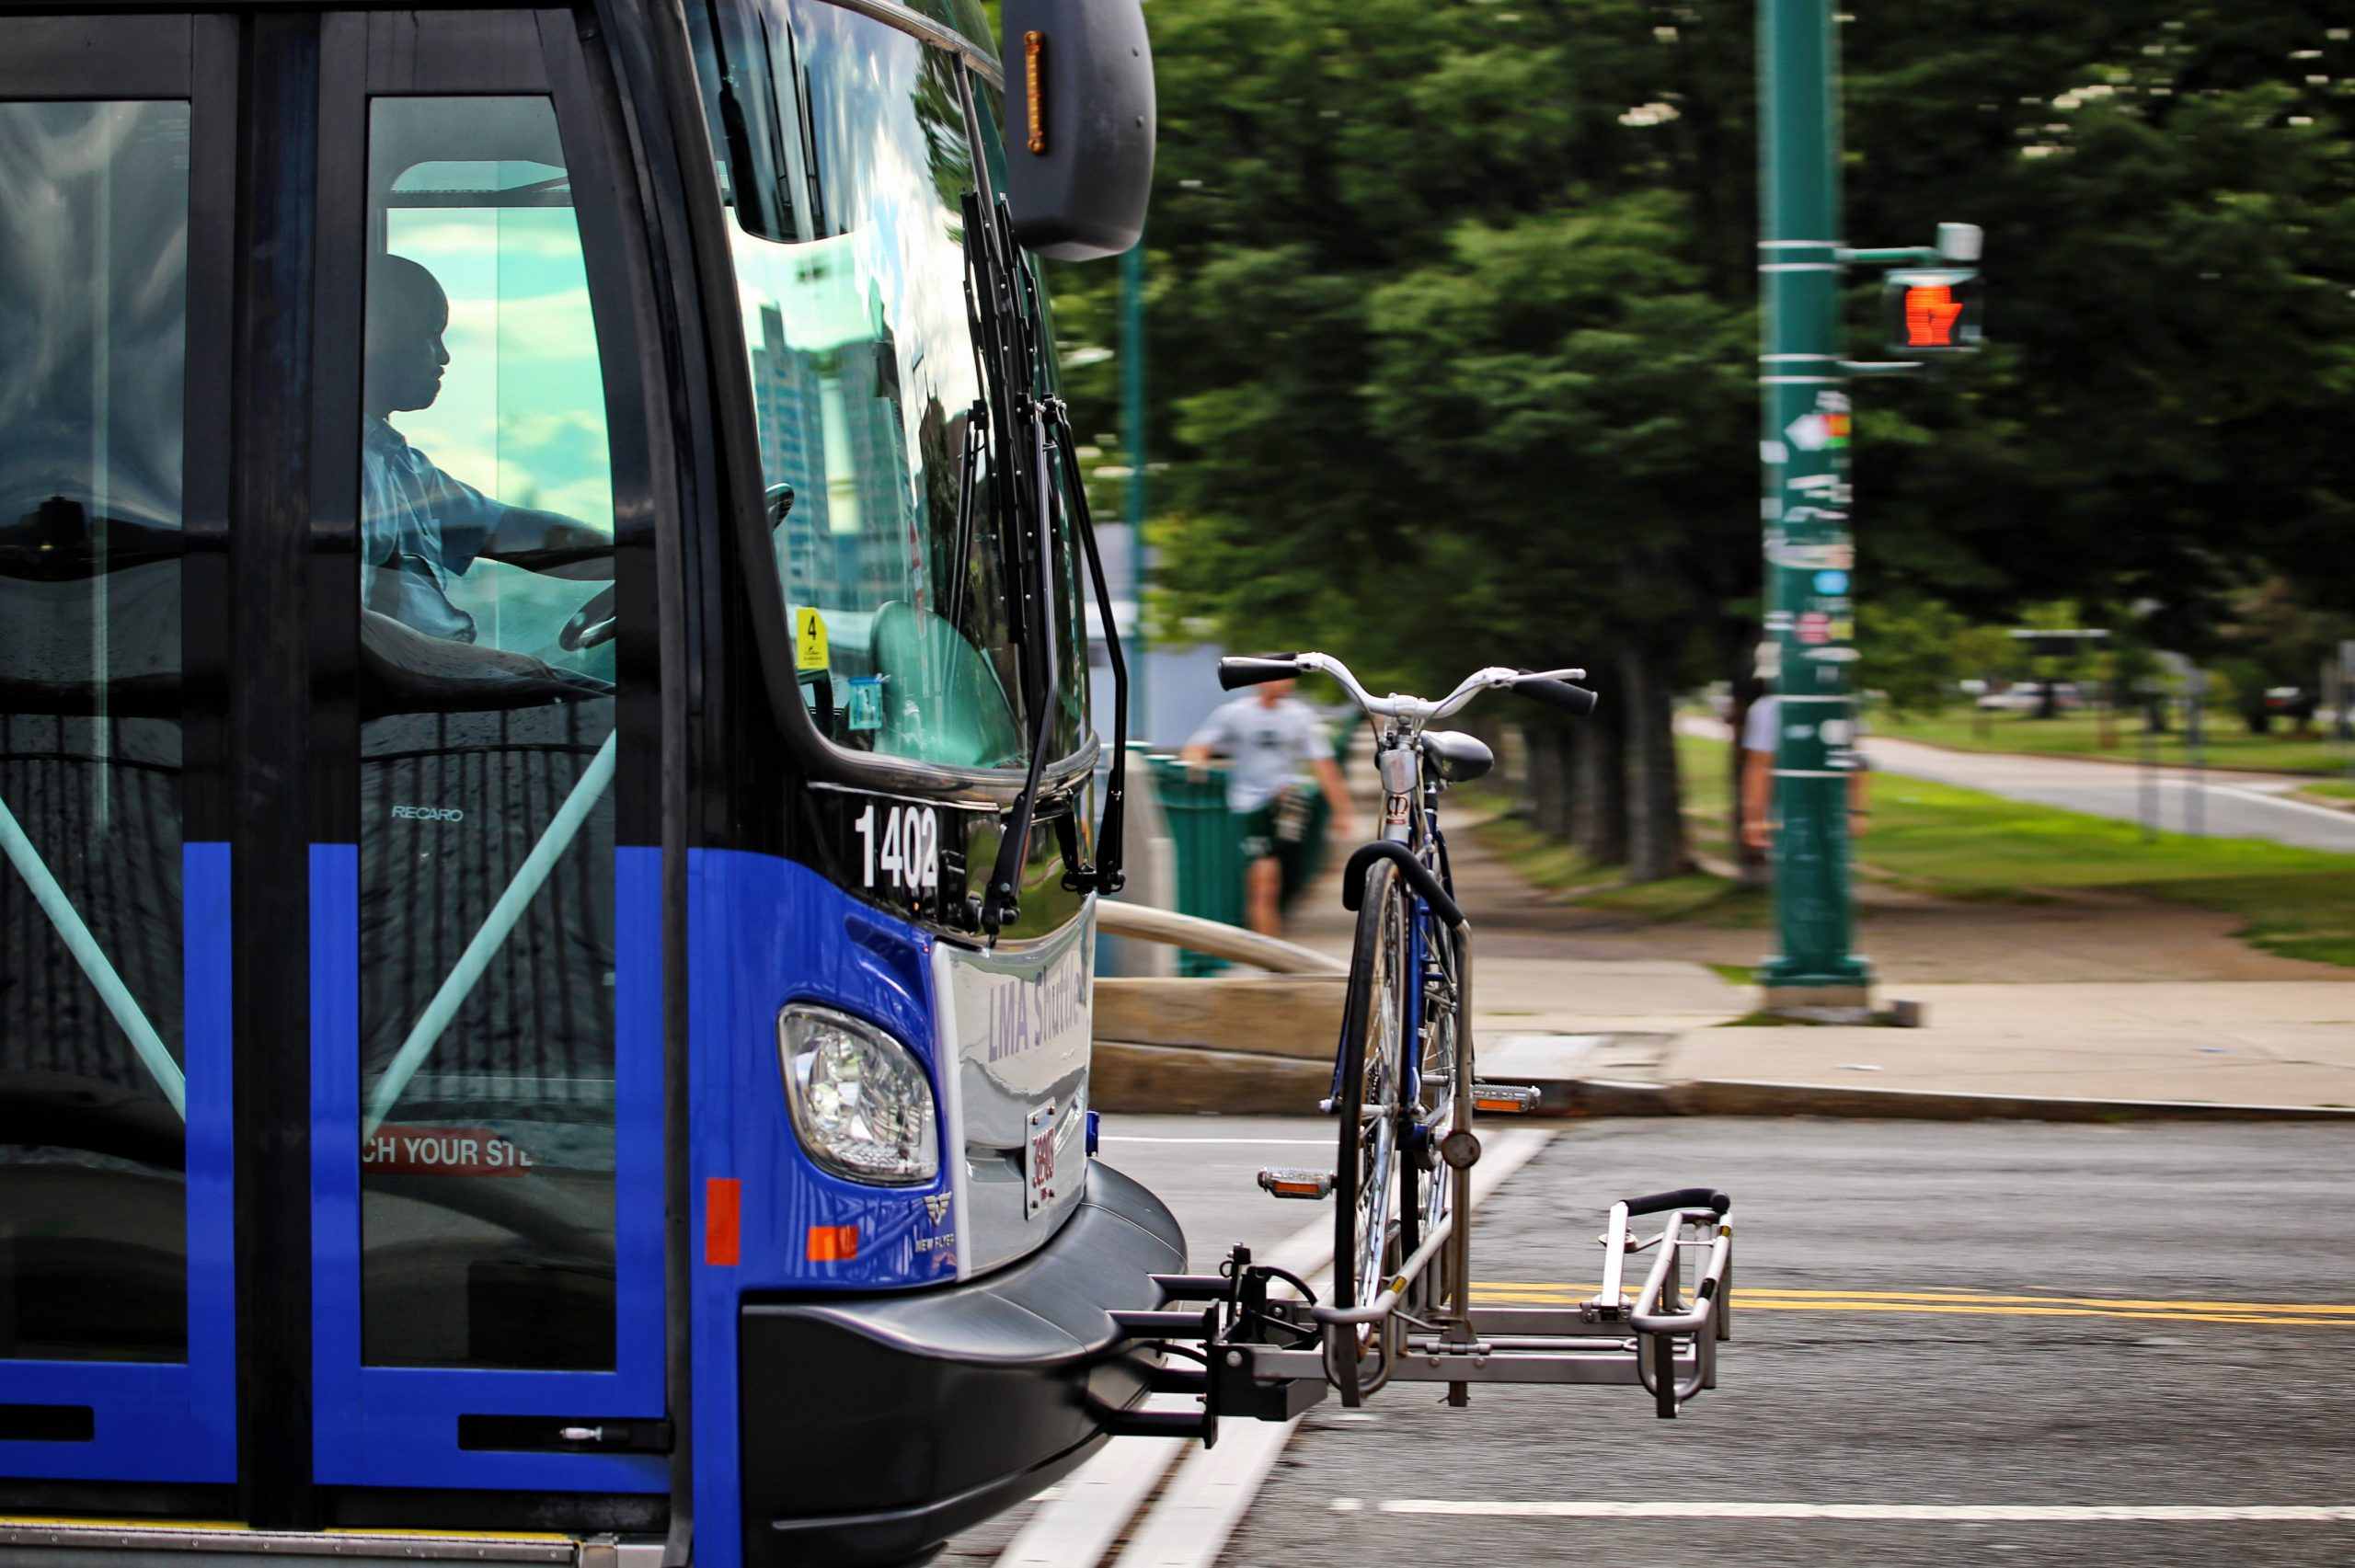 A bike rack on the front of a bus.